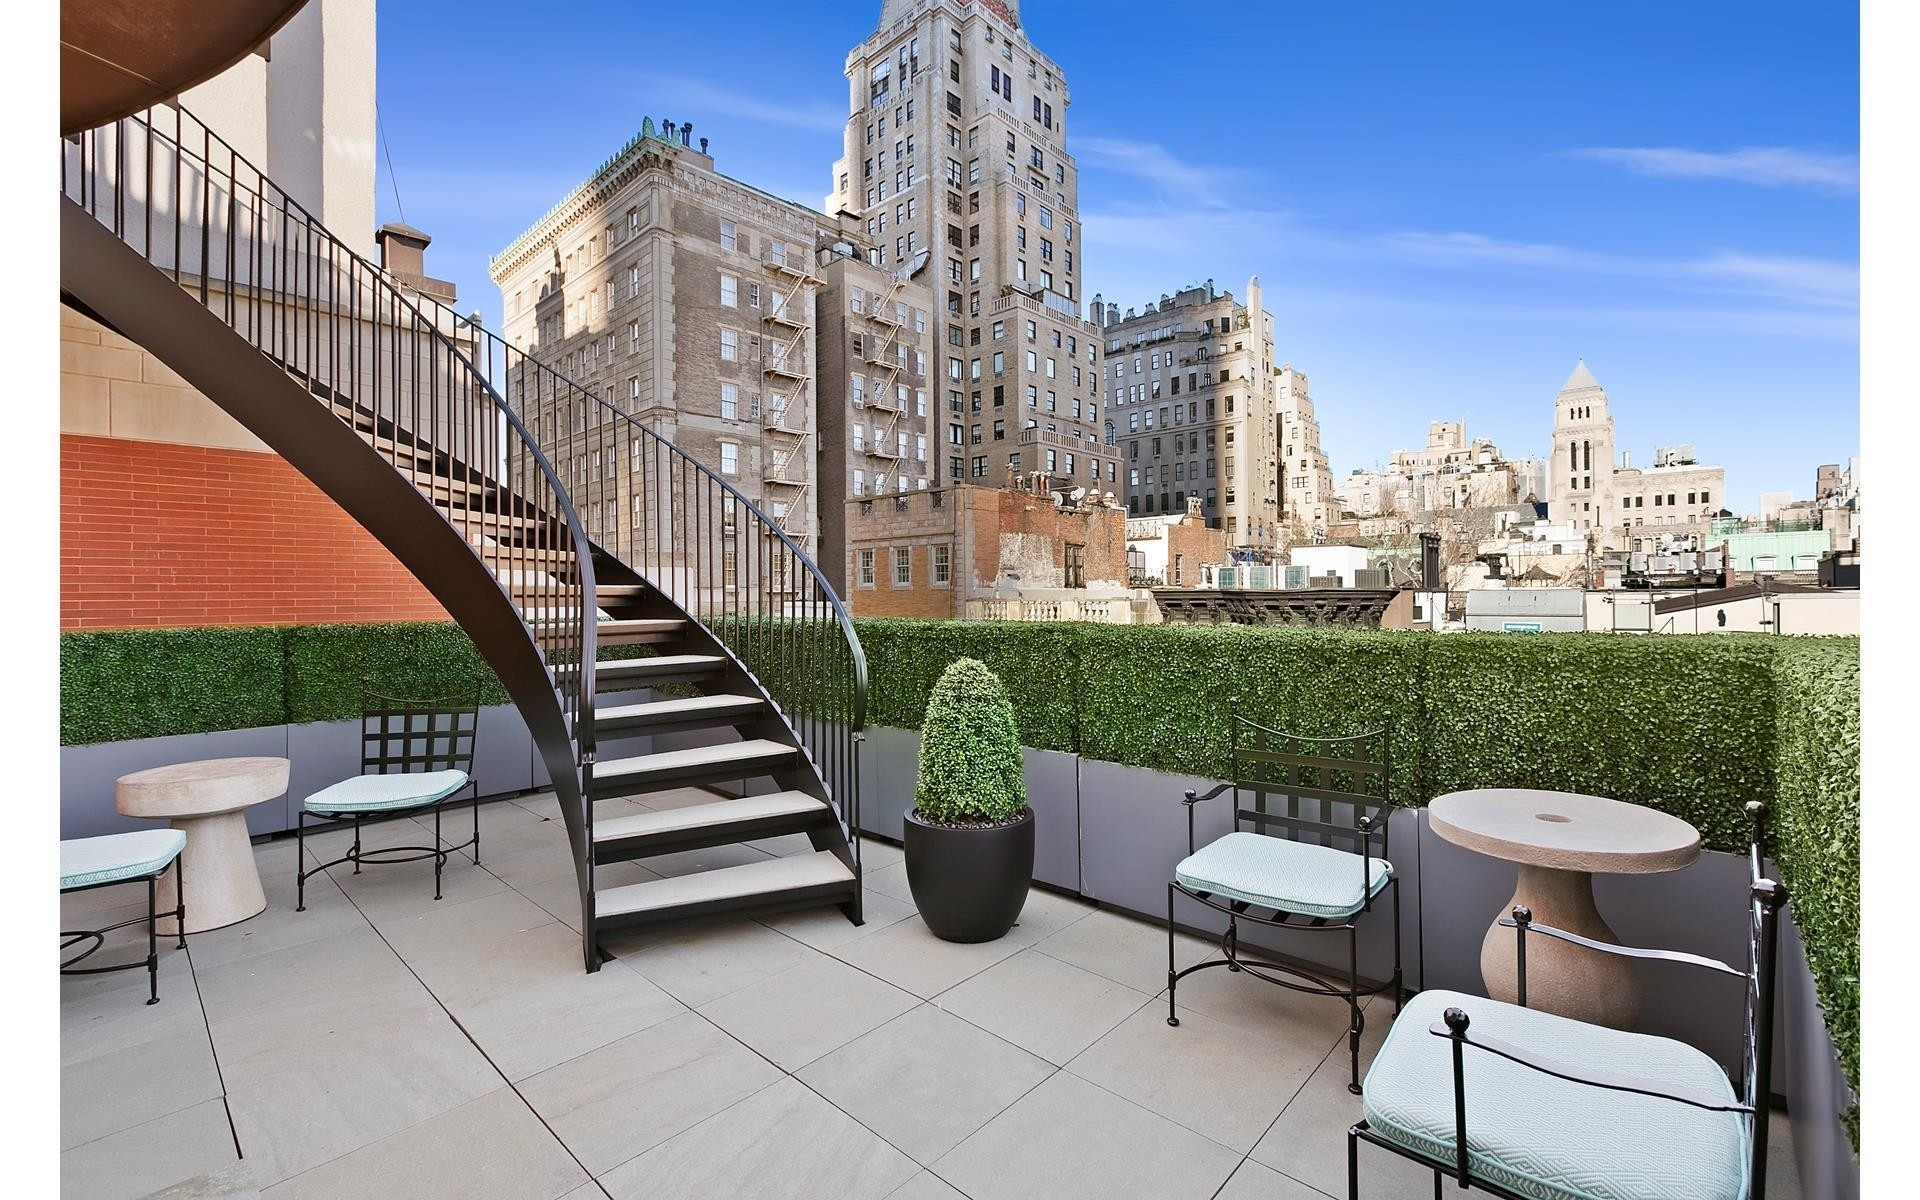 19. Single Family Townhouse for Sale at 12 E 63RD ST , TOWNHOUSE Lenox Hill, New York, NY 10065